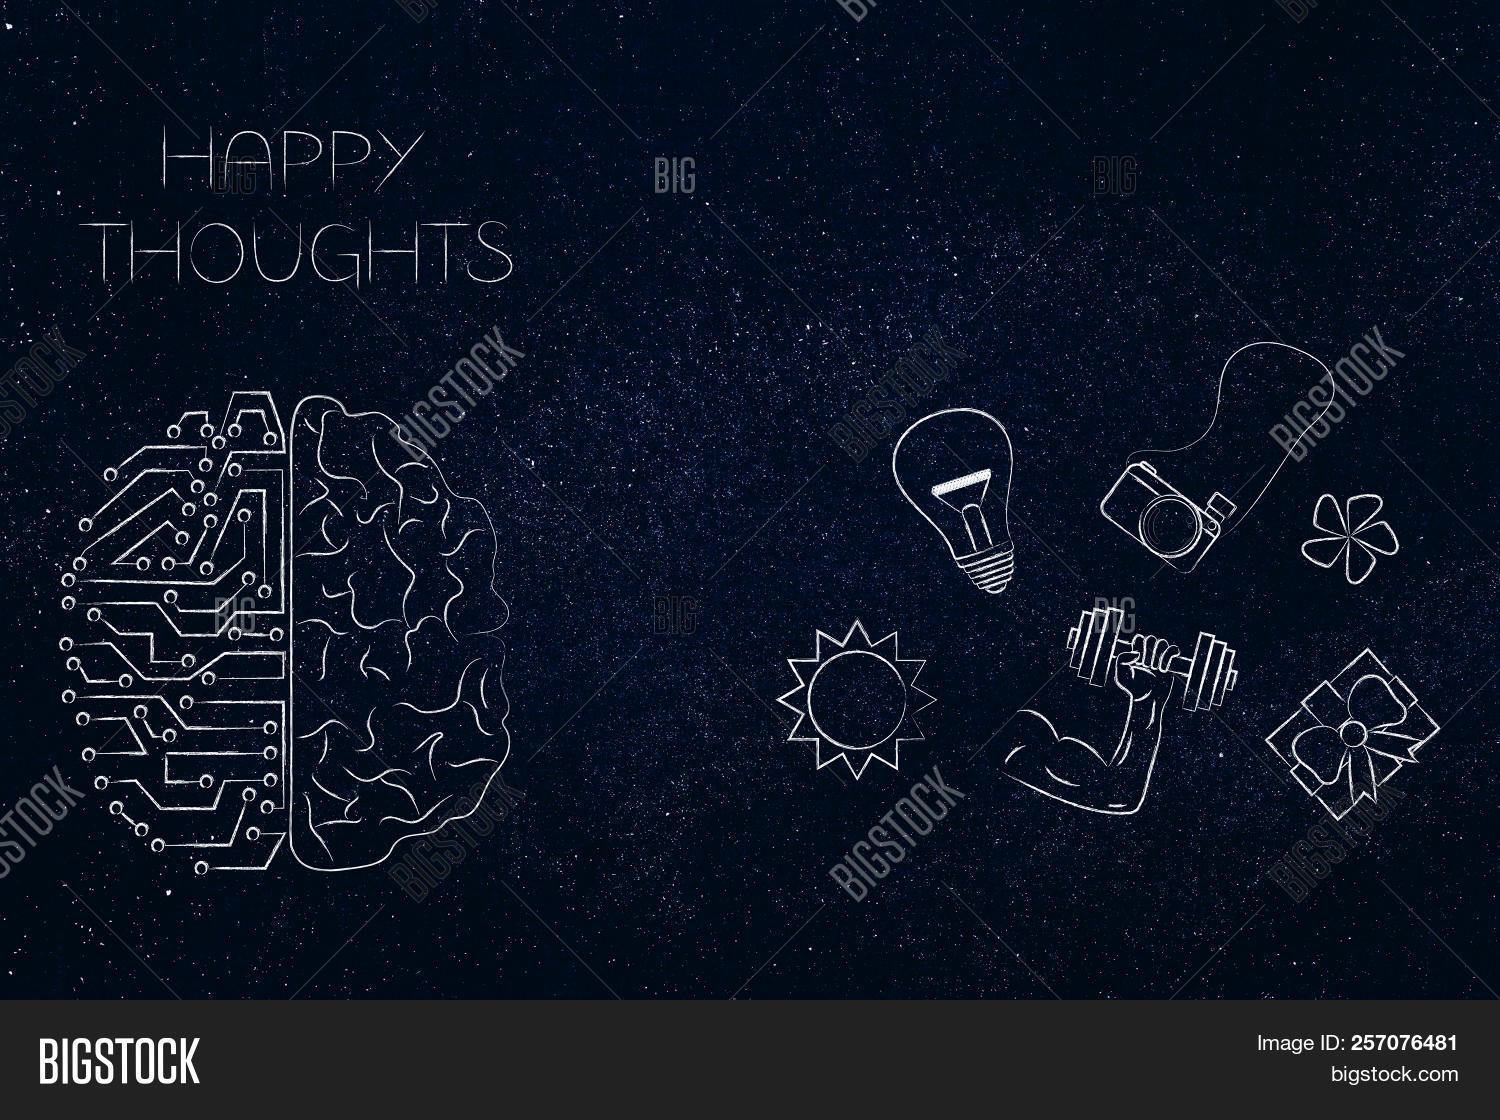 hight resolution of positive and negative attitude conceptual illustration circuit and human brain with happy thoughts